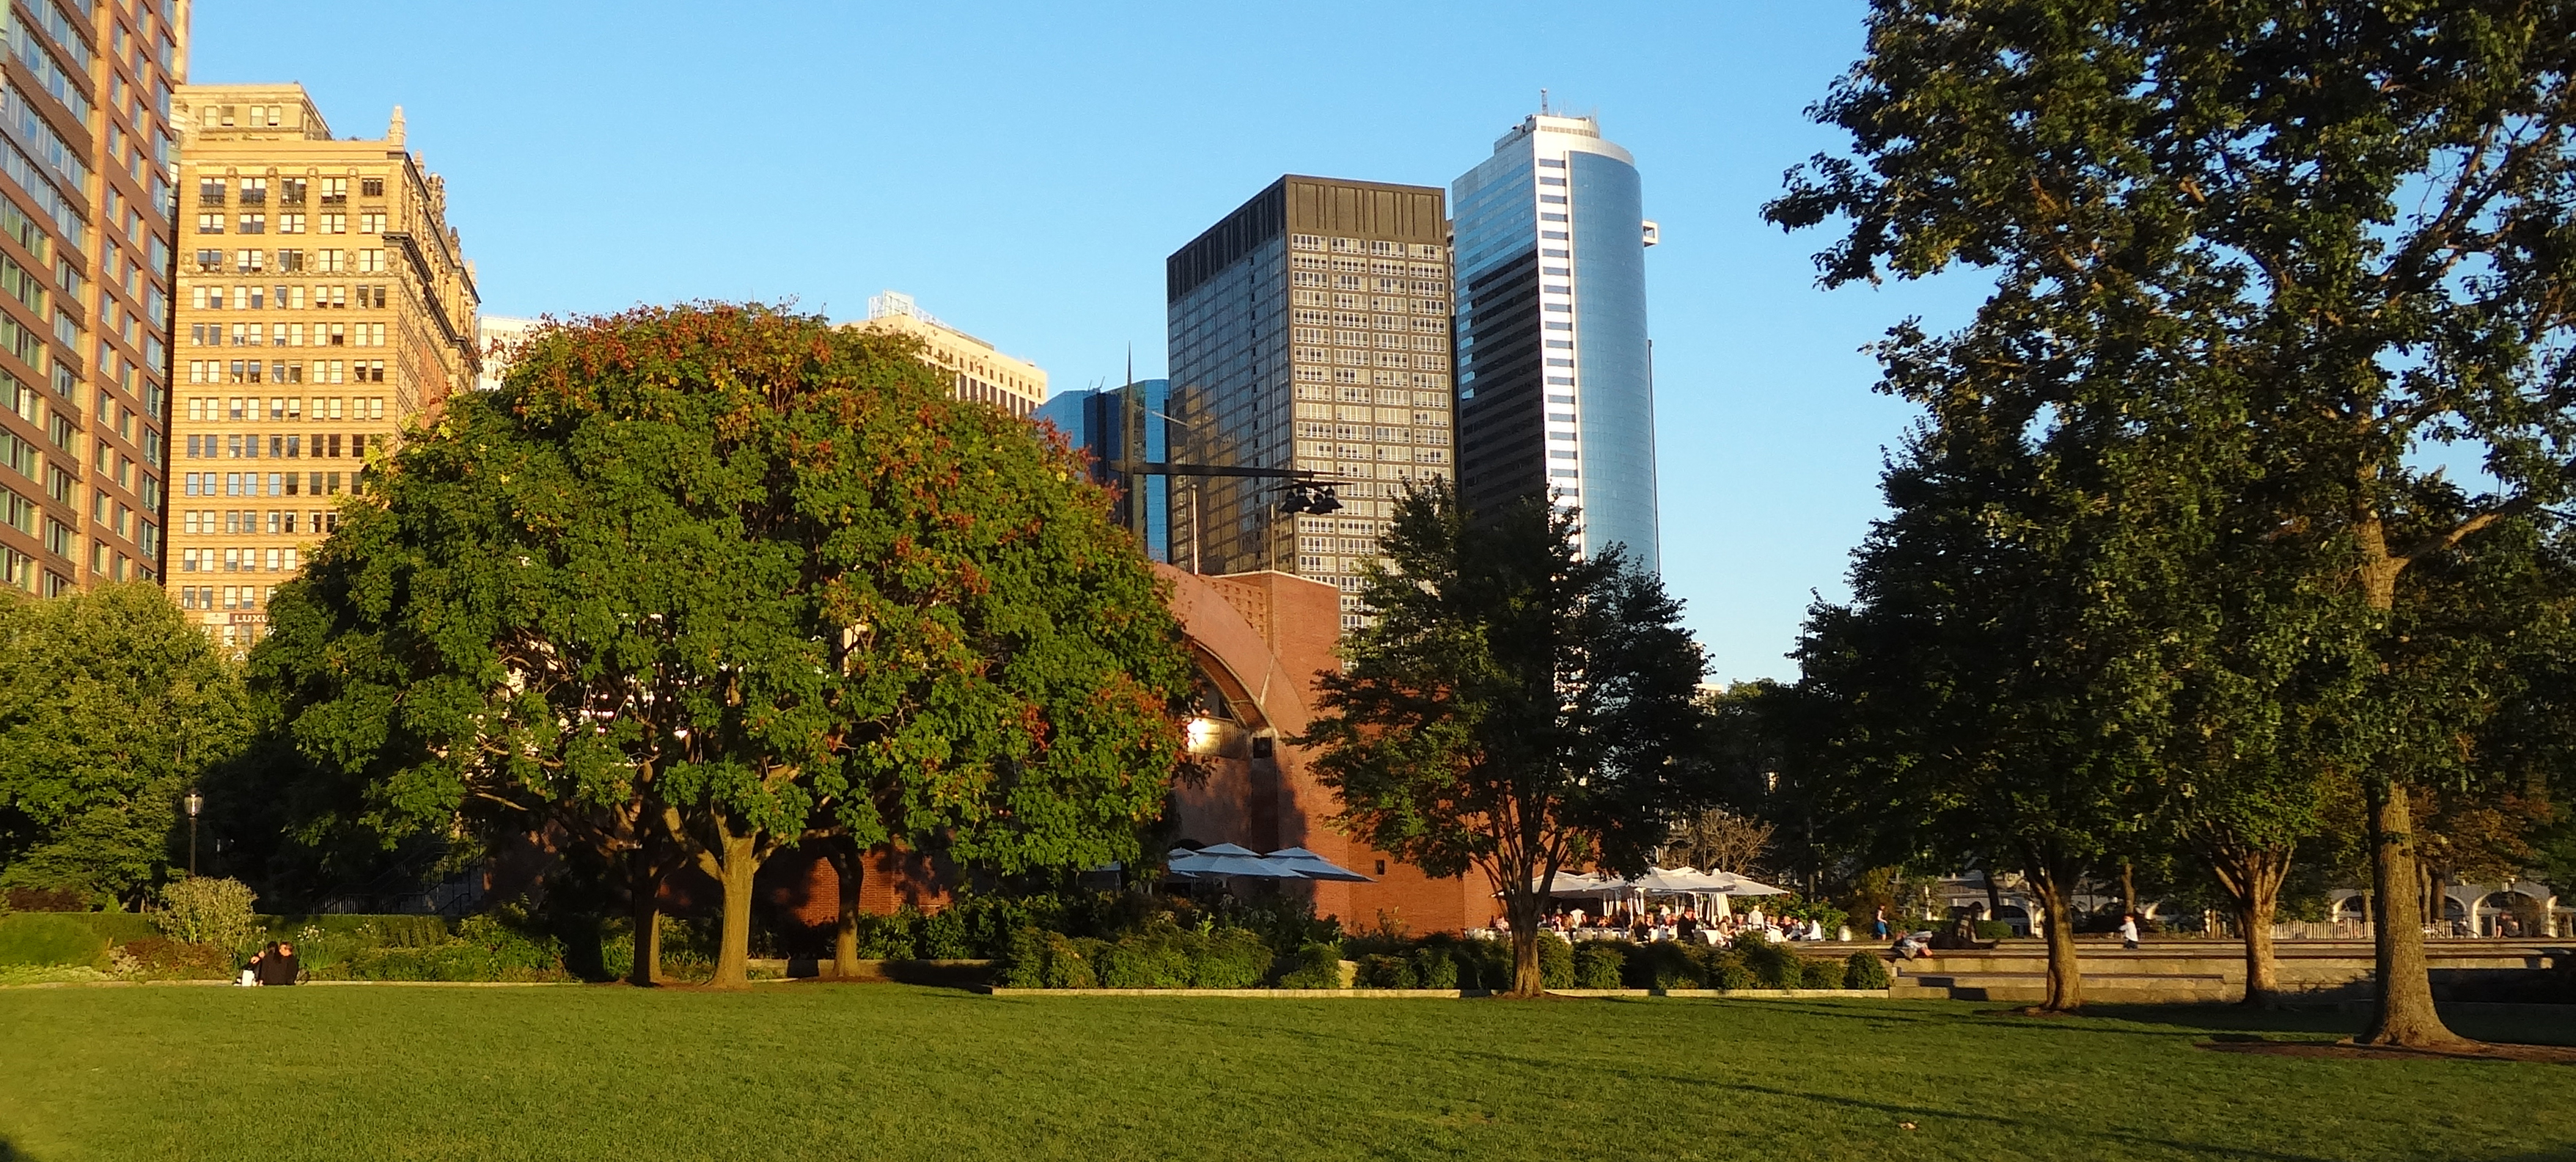 Wagner lawn 9-19-2013